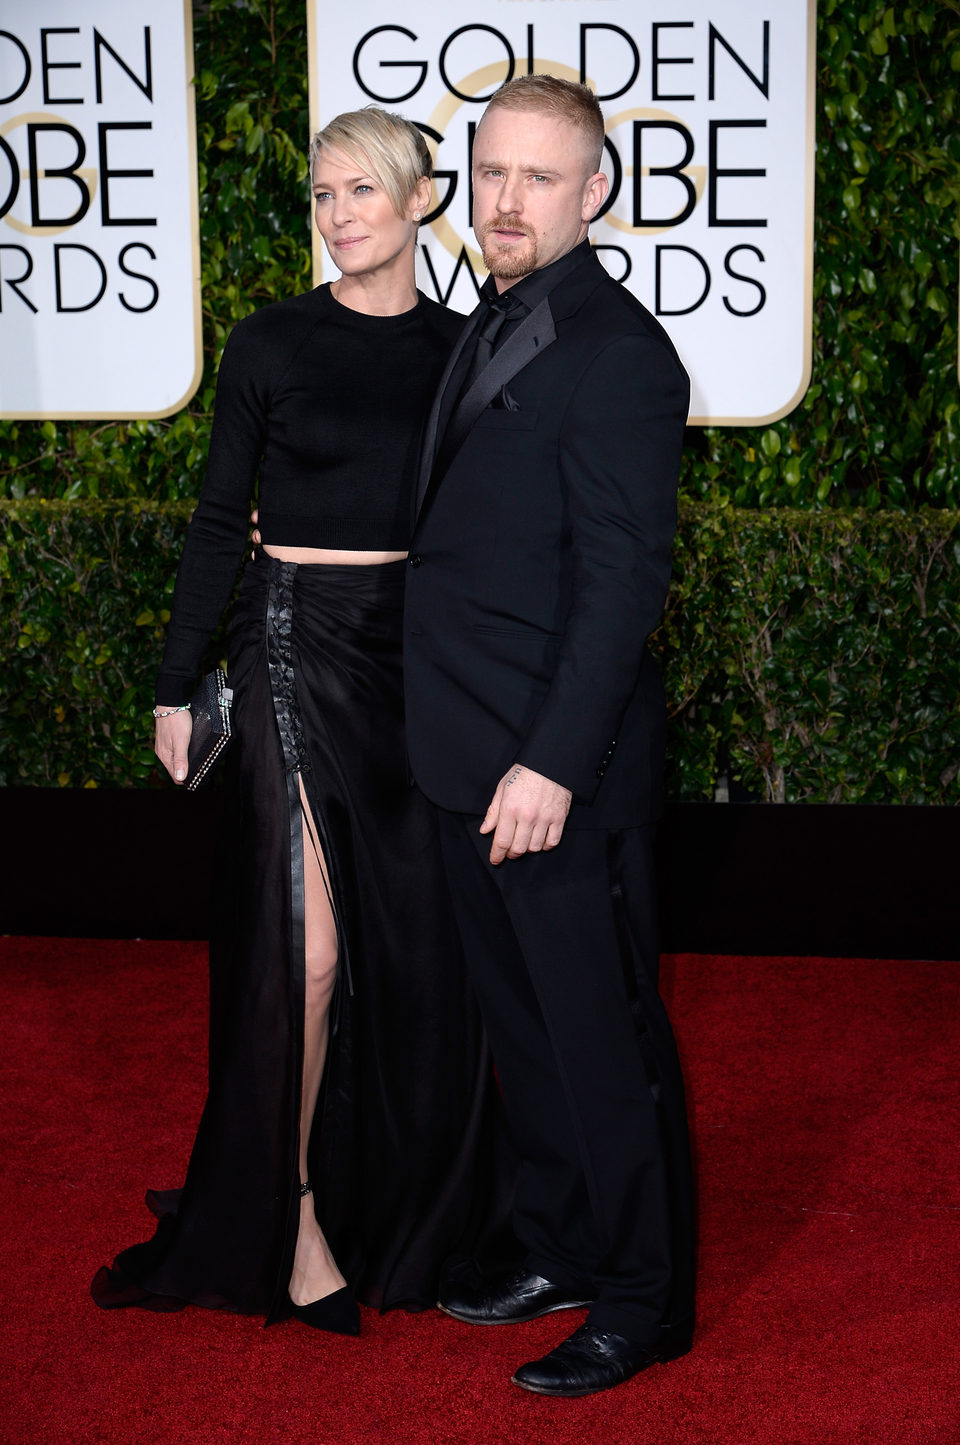 Robin Wright and Ben Foster at the Golden Globes 2015 red carpet